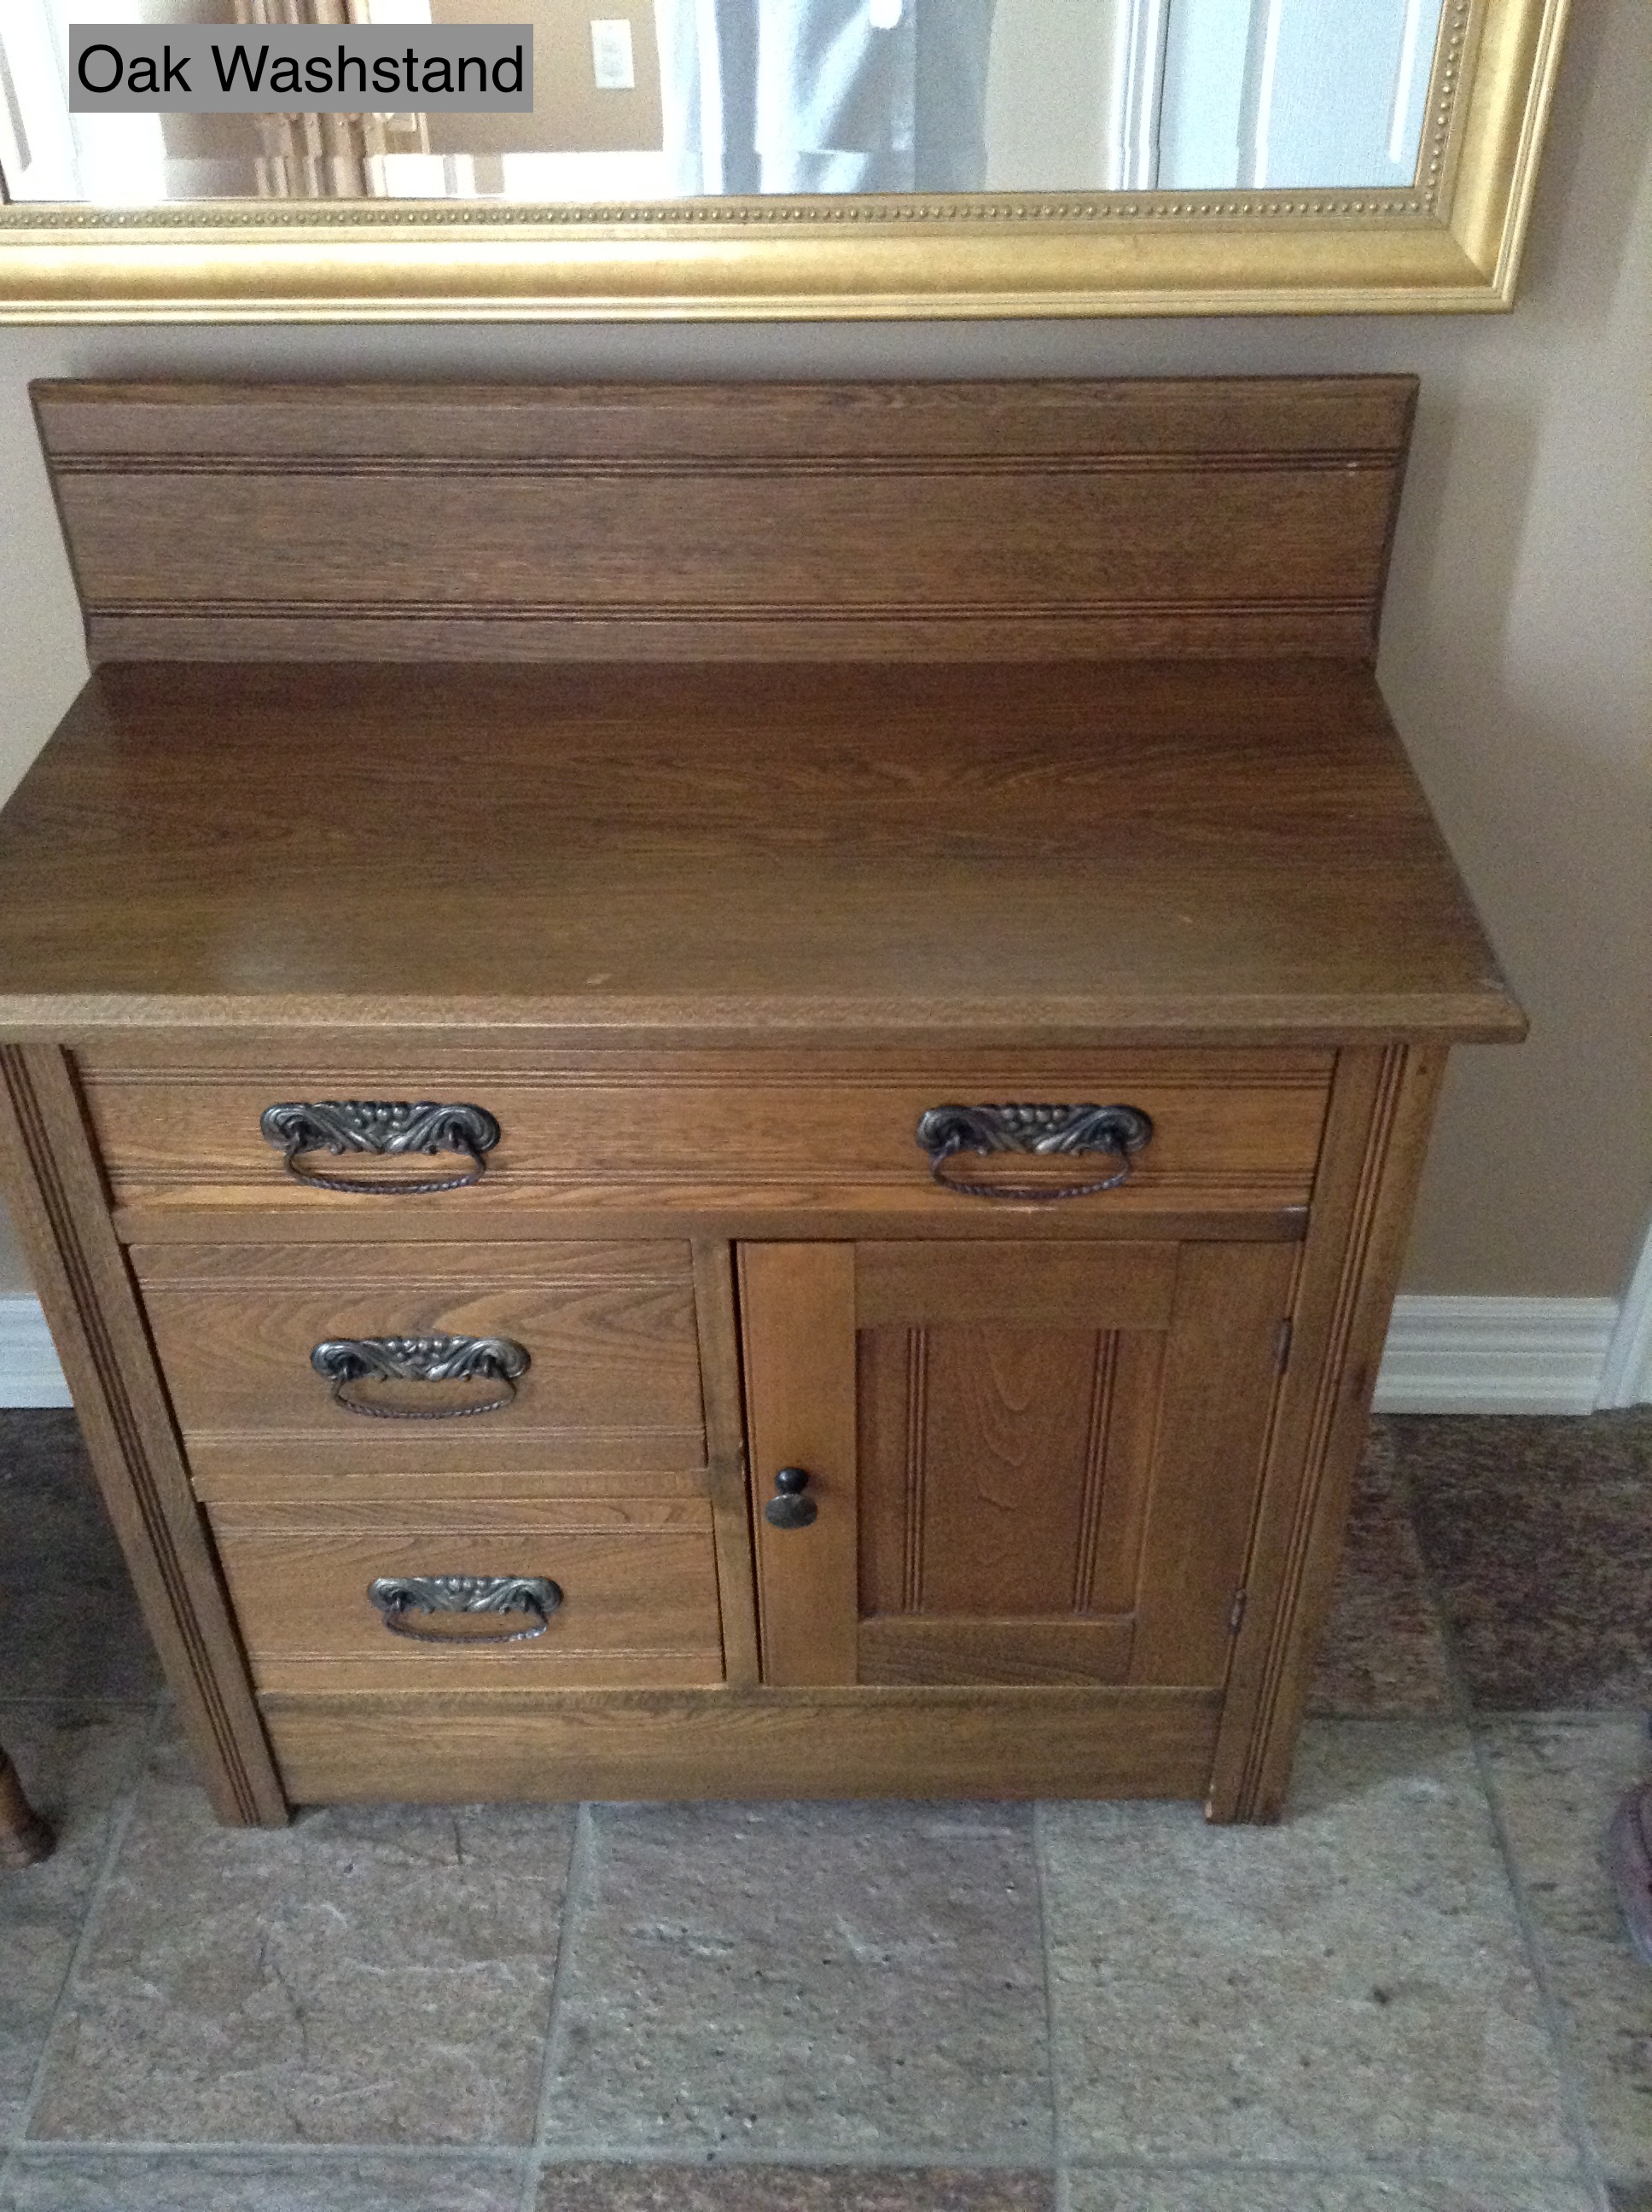 Oak Washstand